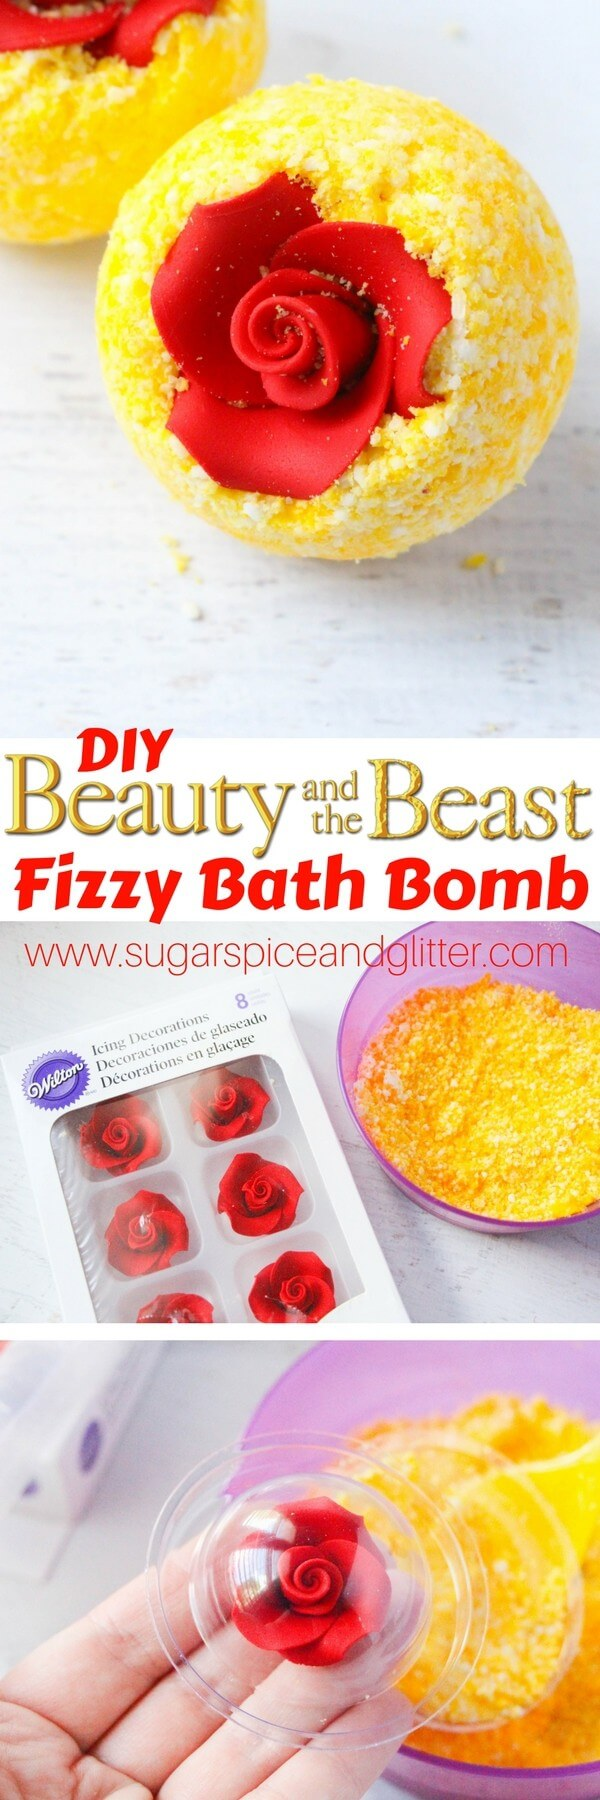 DIY Belle's Bath Bombs - a fun Disney DIY gift or addition to your Disney movie night. The perfect Beauty & the Beast craft for your bathroom